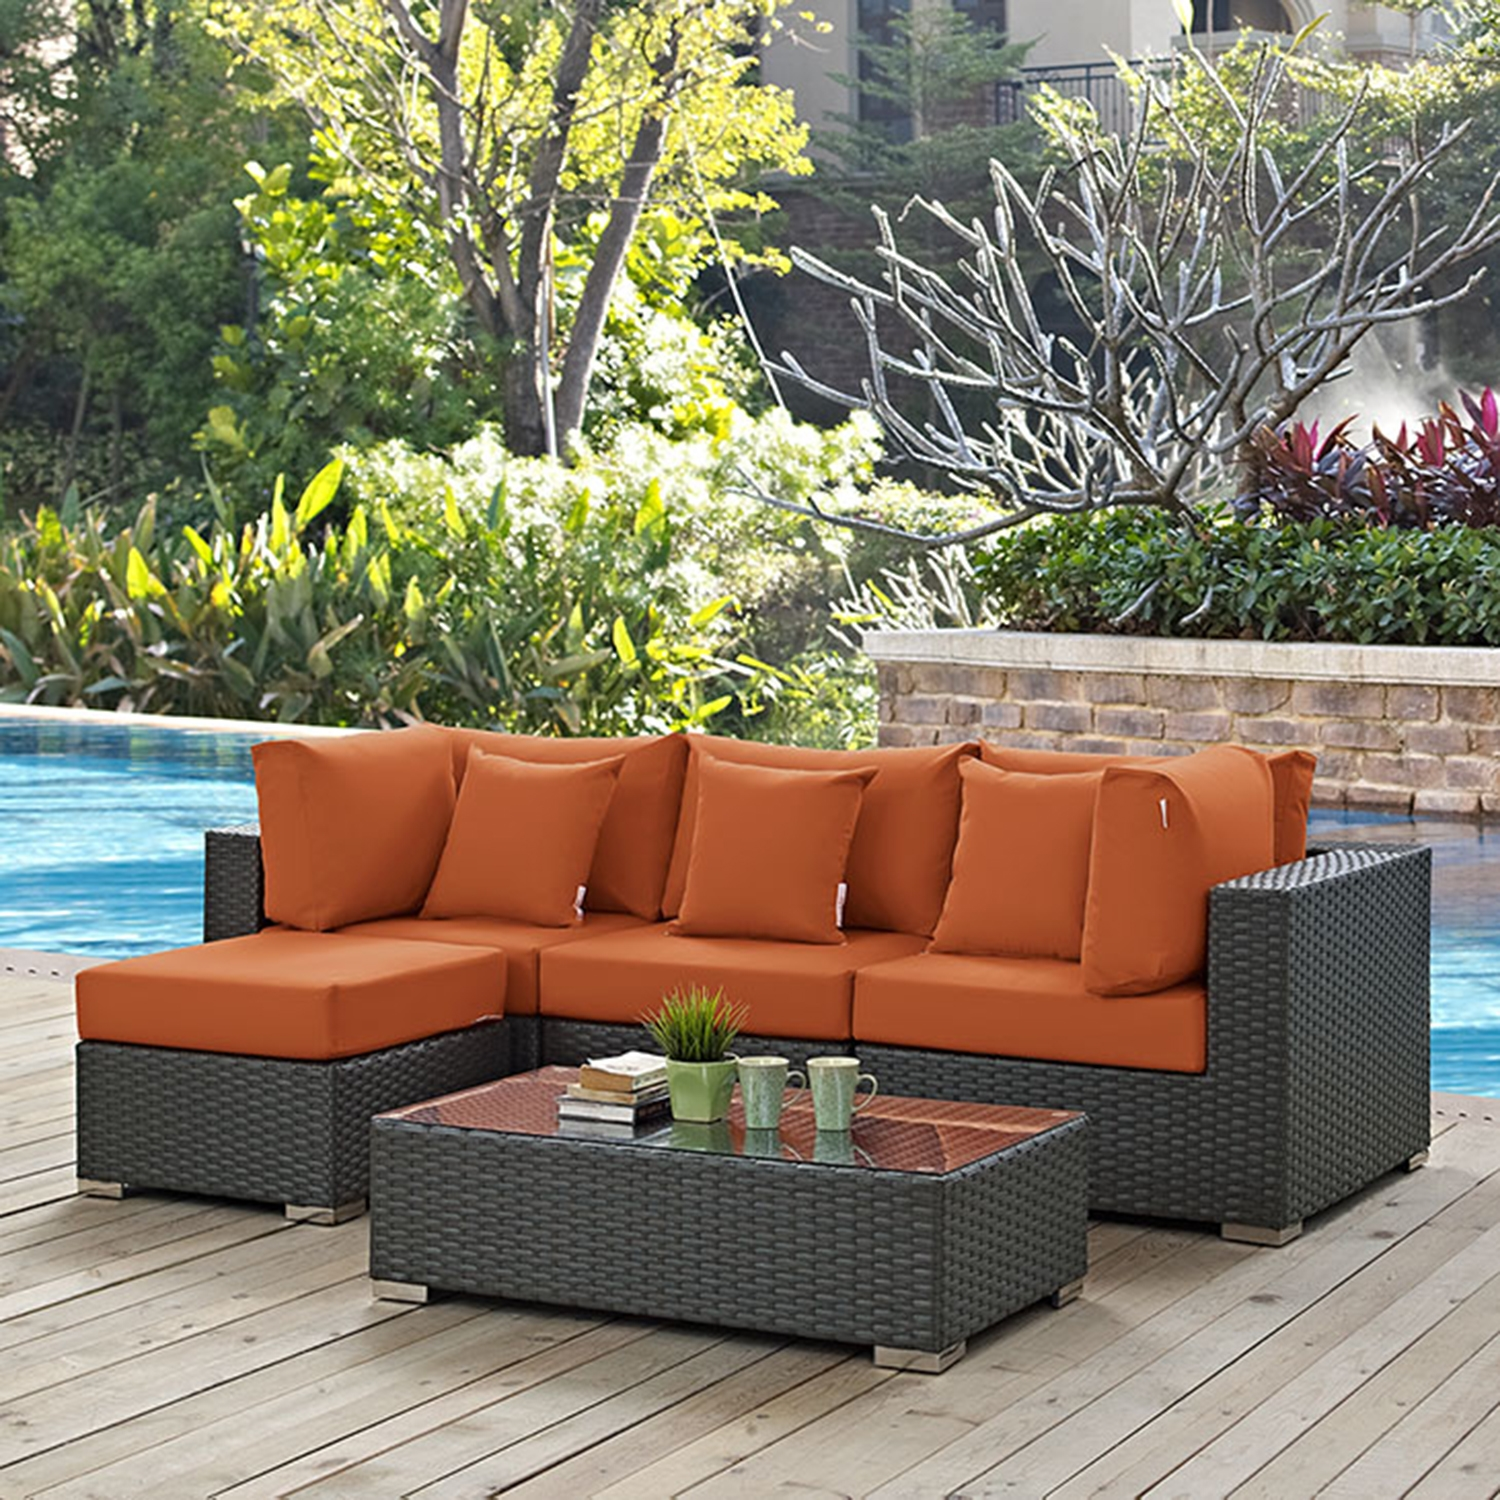 Sojourn 5 Pieces Patio Sectional Set - Sunbrella Canvas Tuscan - EEI-1890-CHC-TUS-SET